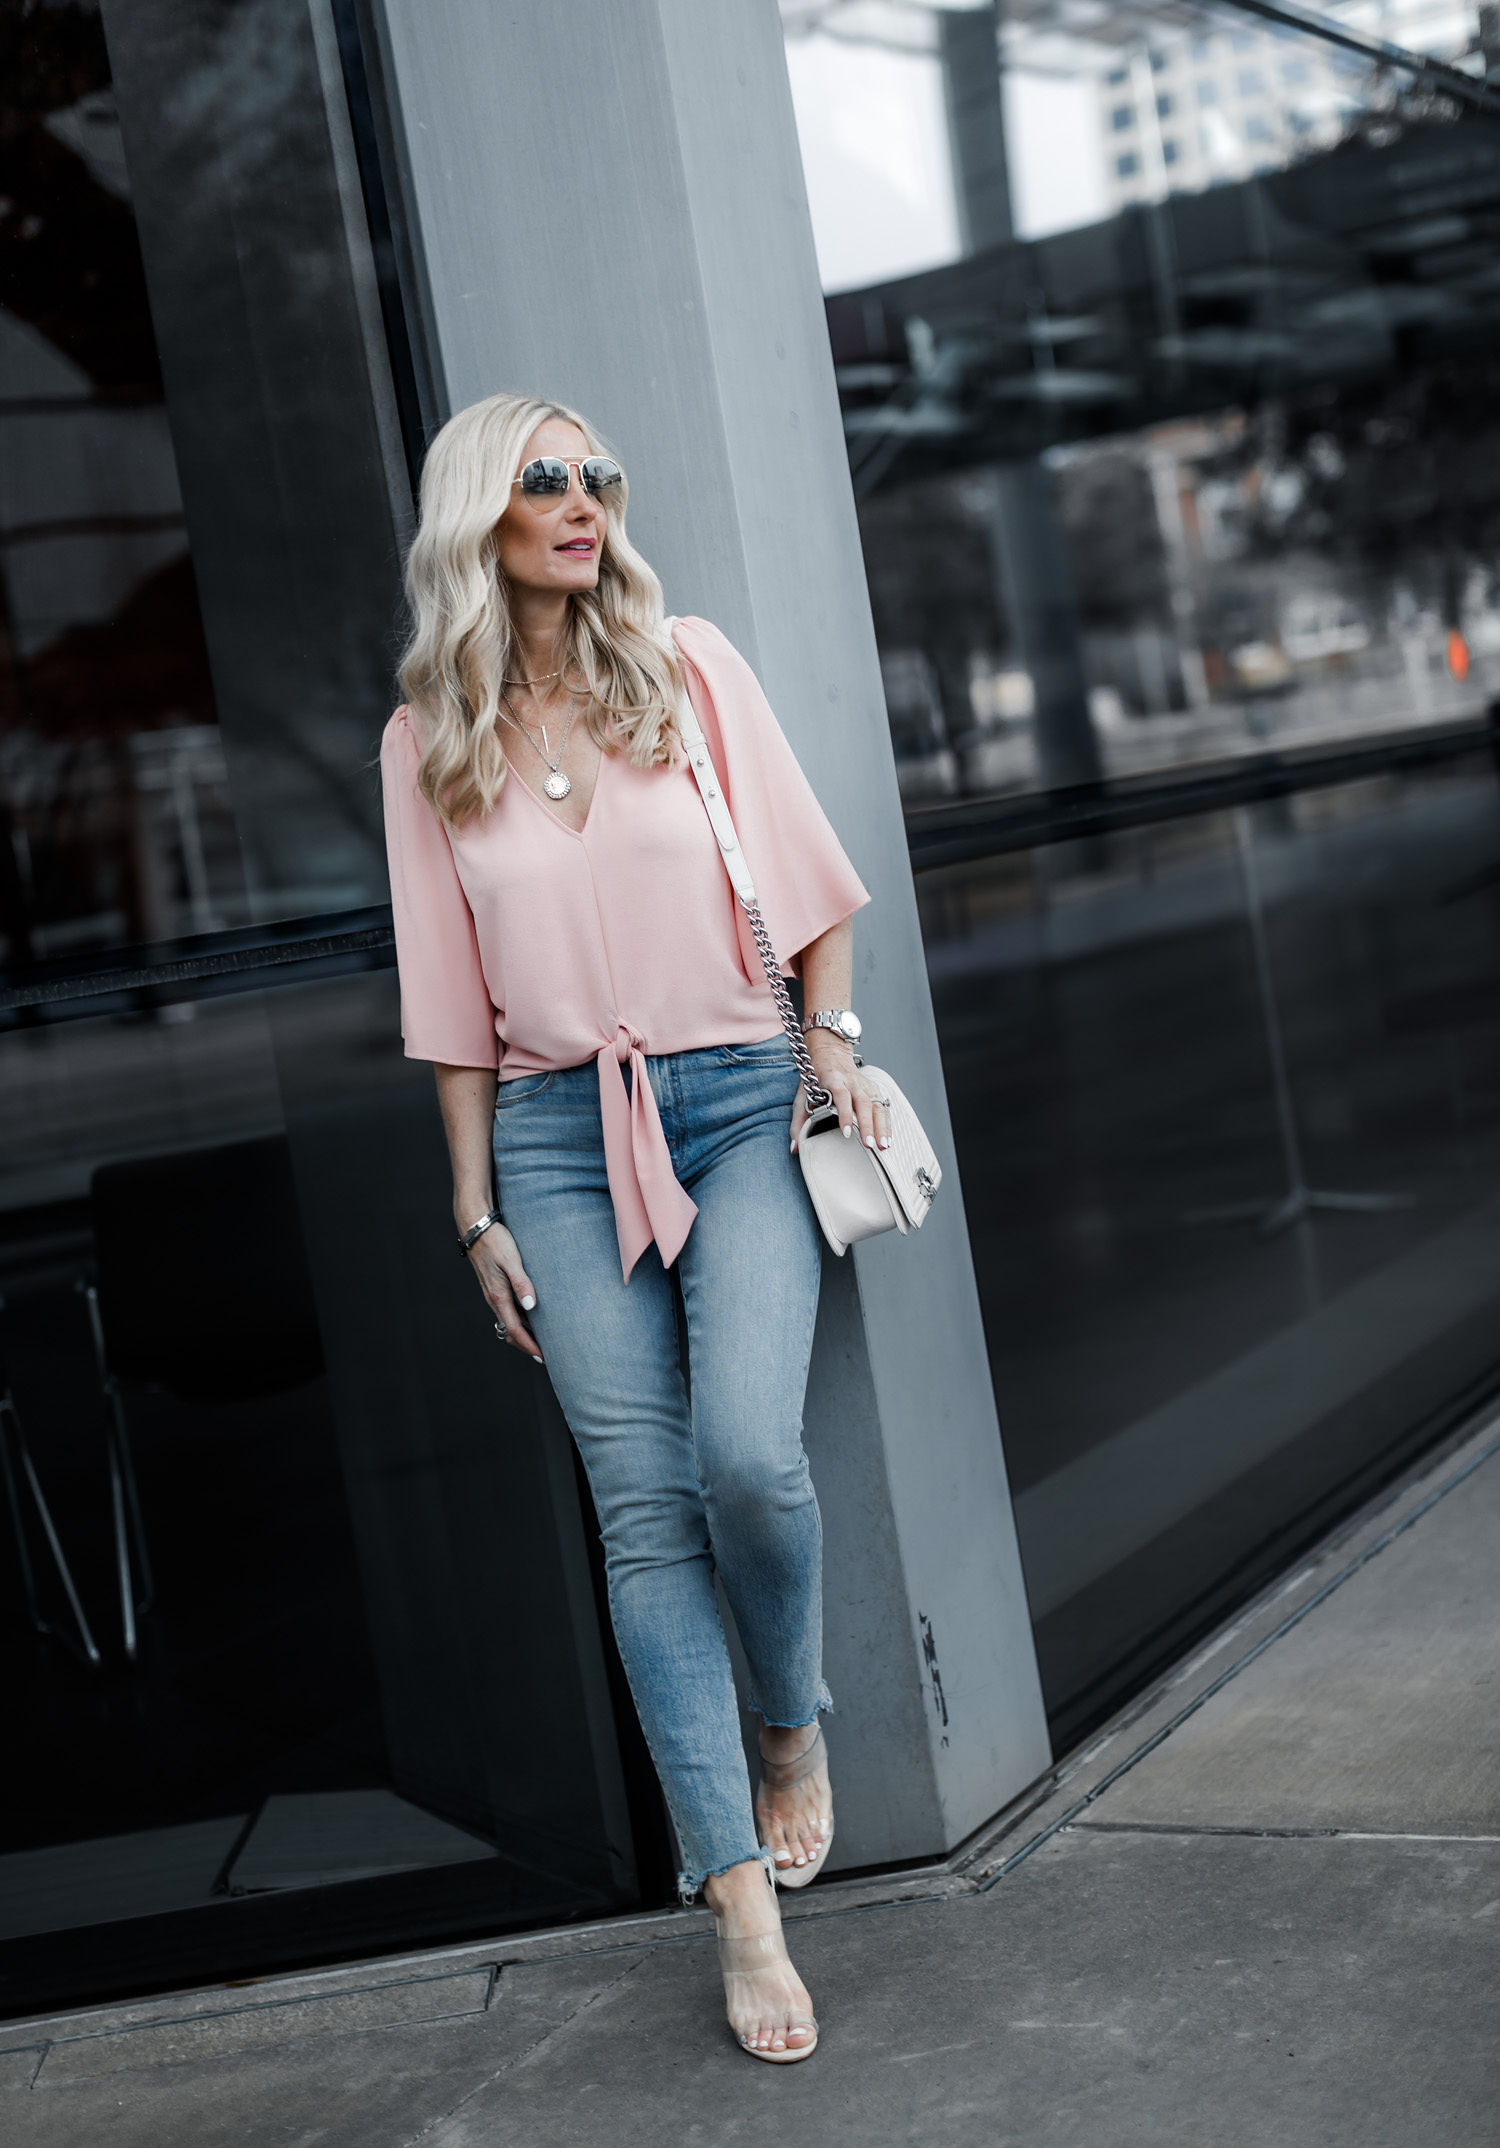 Dallas style blogger wearing Mother denim jeans and pink sprint top